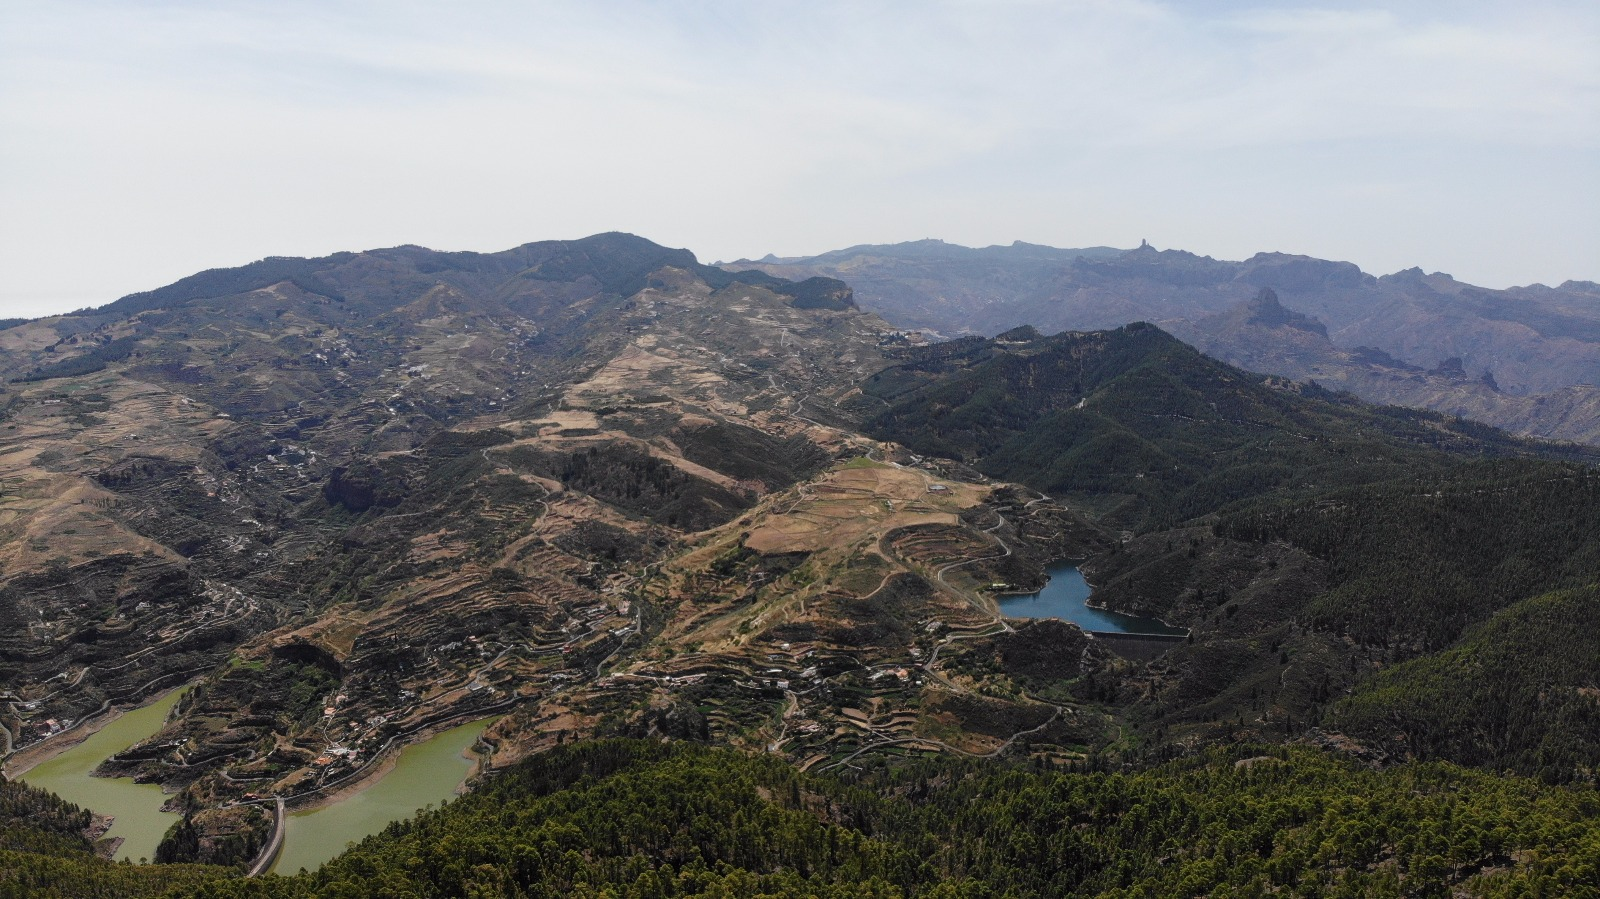 Bike route through Los Pérez Dam. View from the top